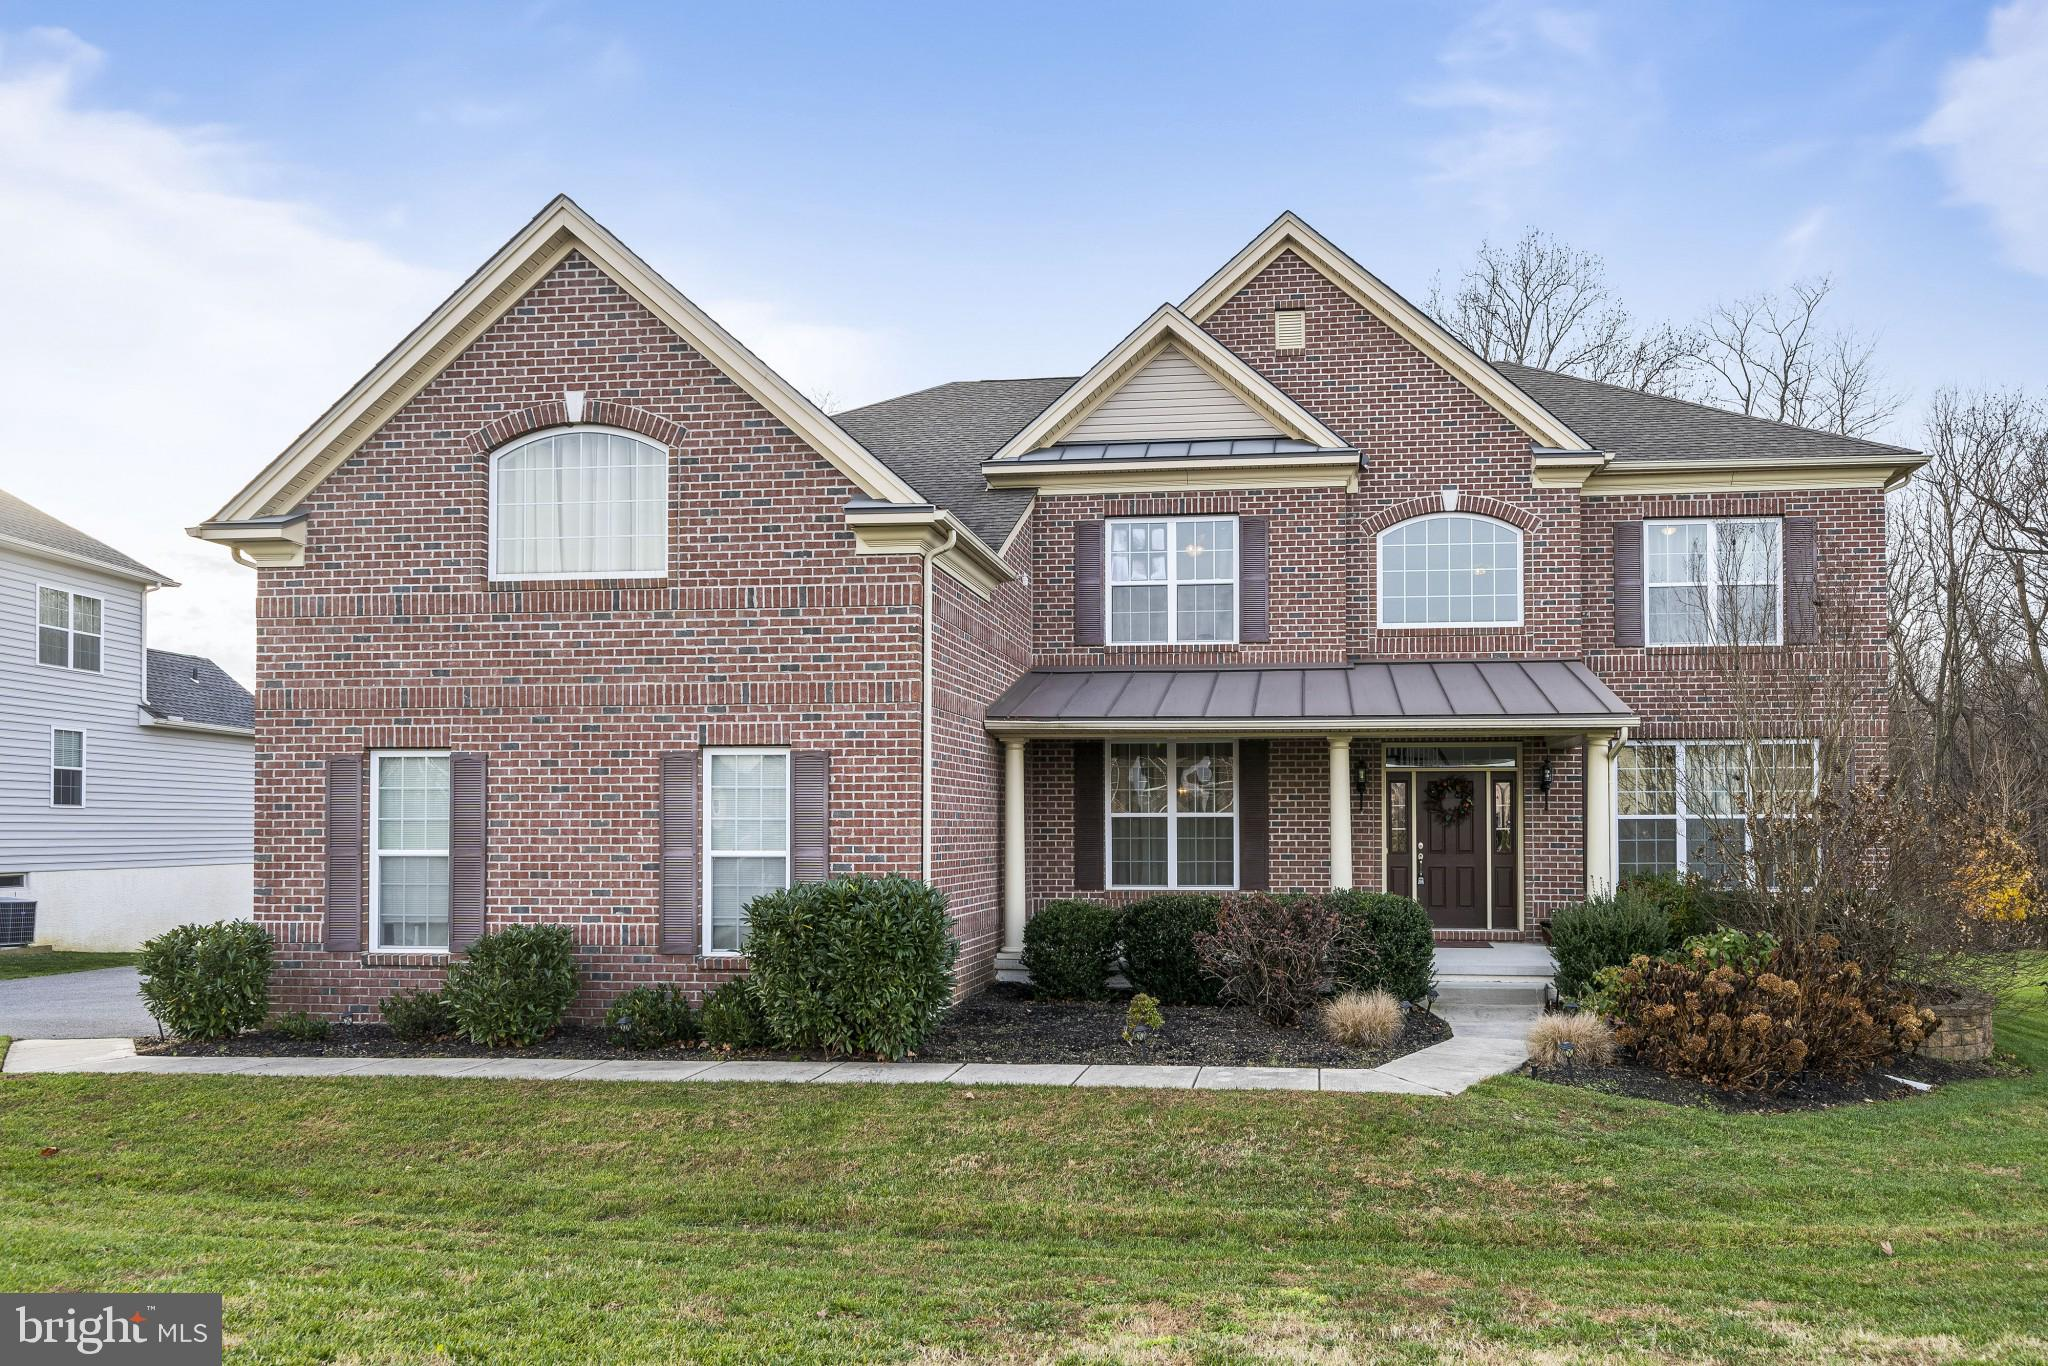 Welcome Home to 1437 Olmsted Drive in the highly desirable community of Red Lion Chase. This brick f